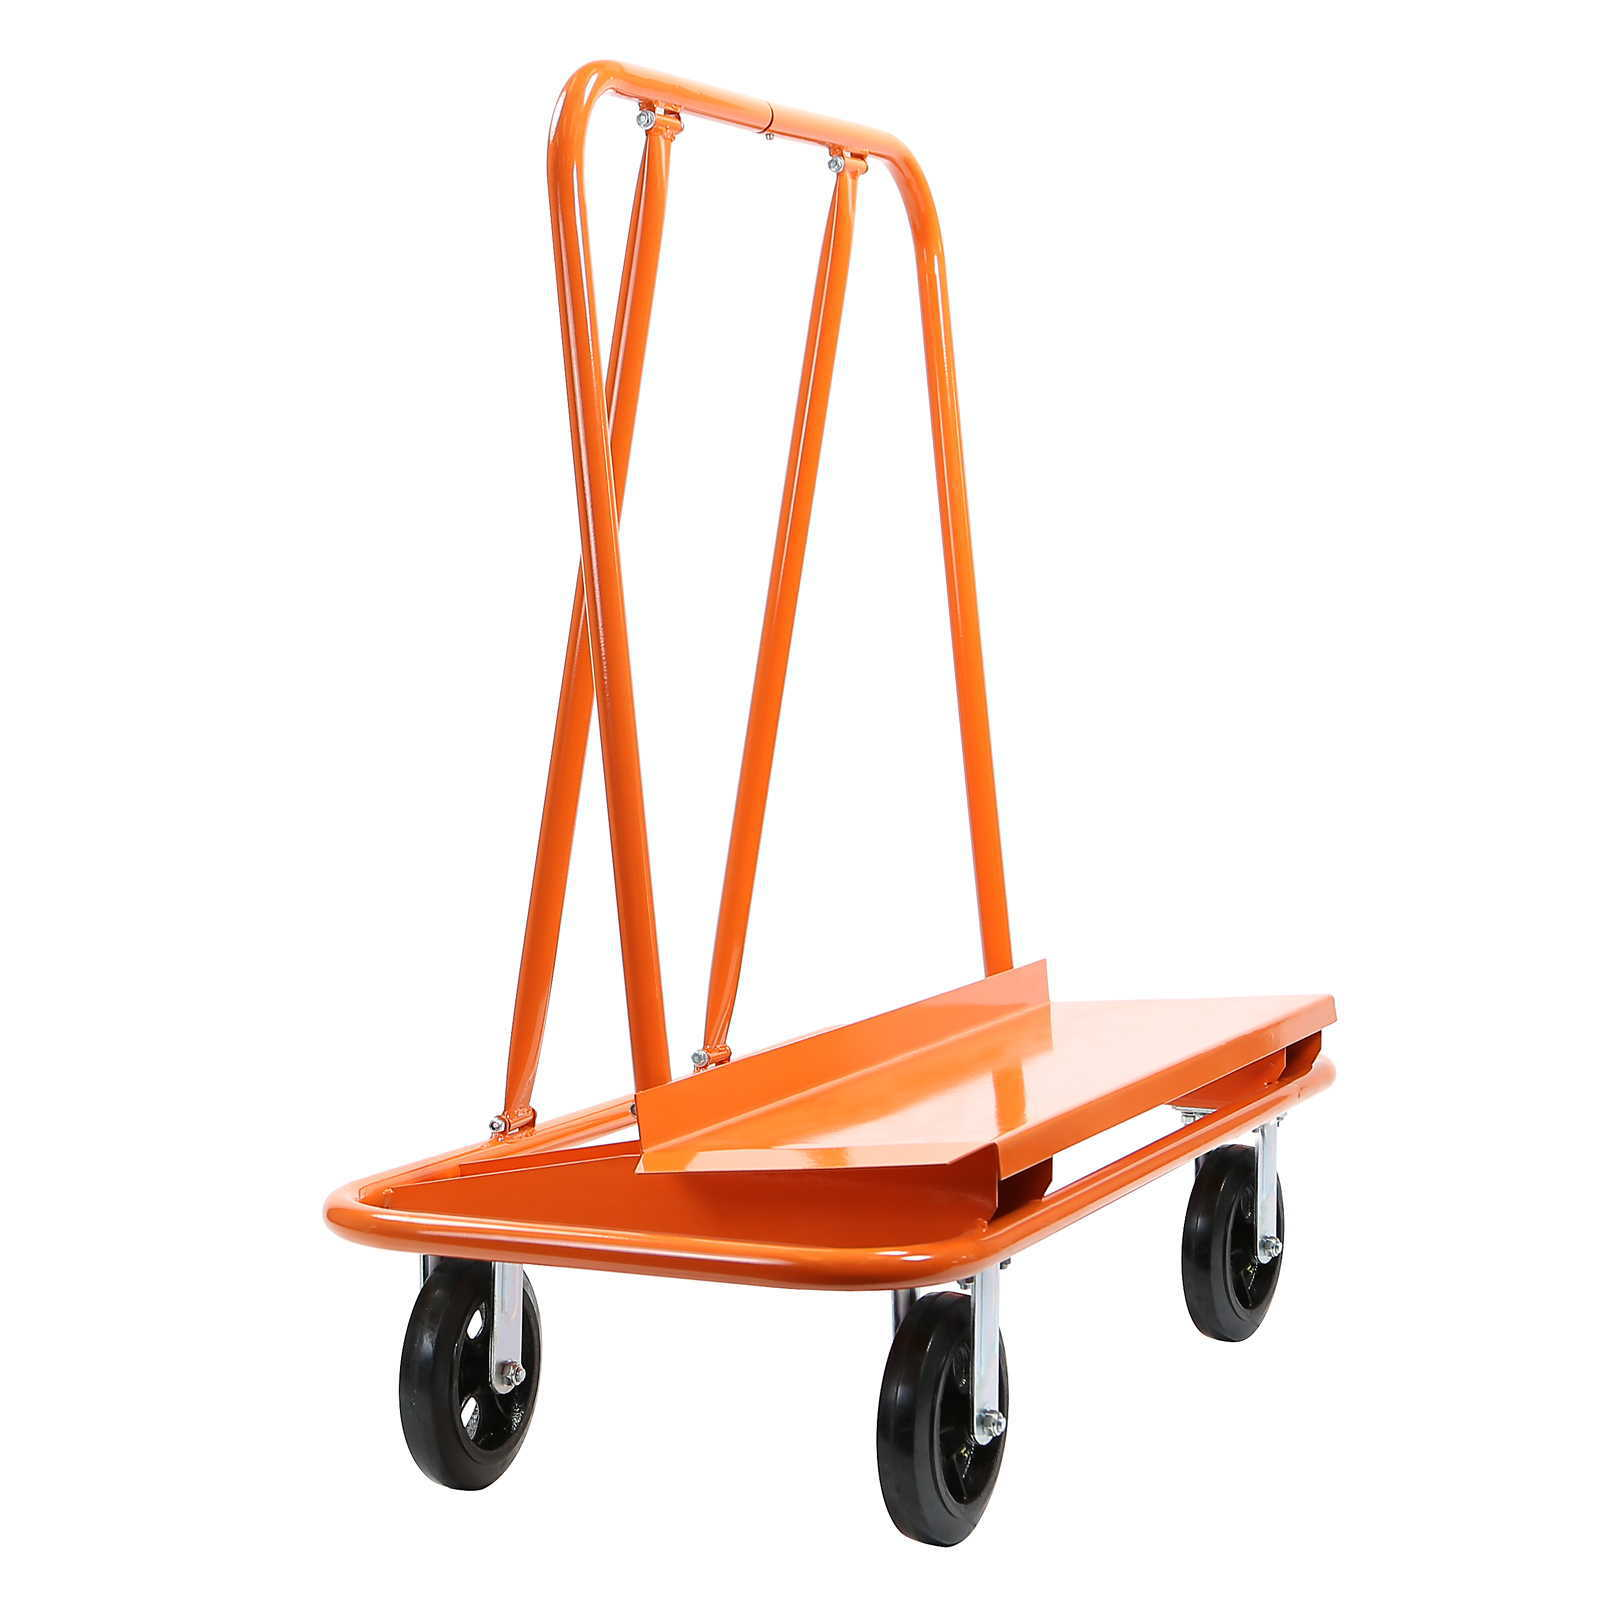 GypTool Heavy Duty Drywall Sheet Cart & Panel Dolly - Orange